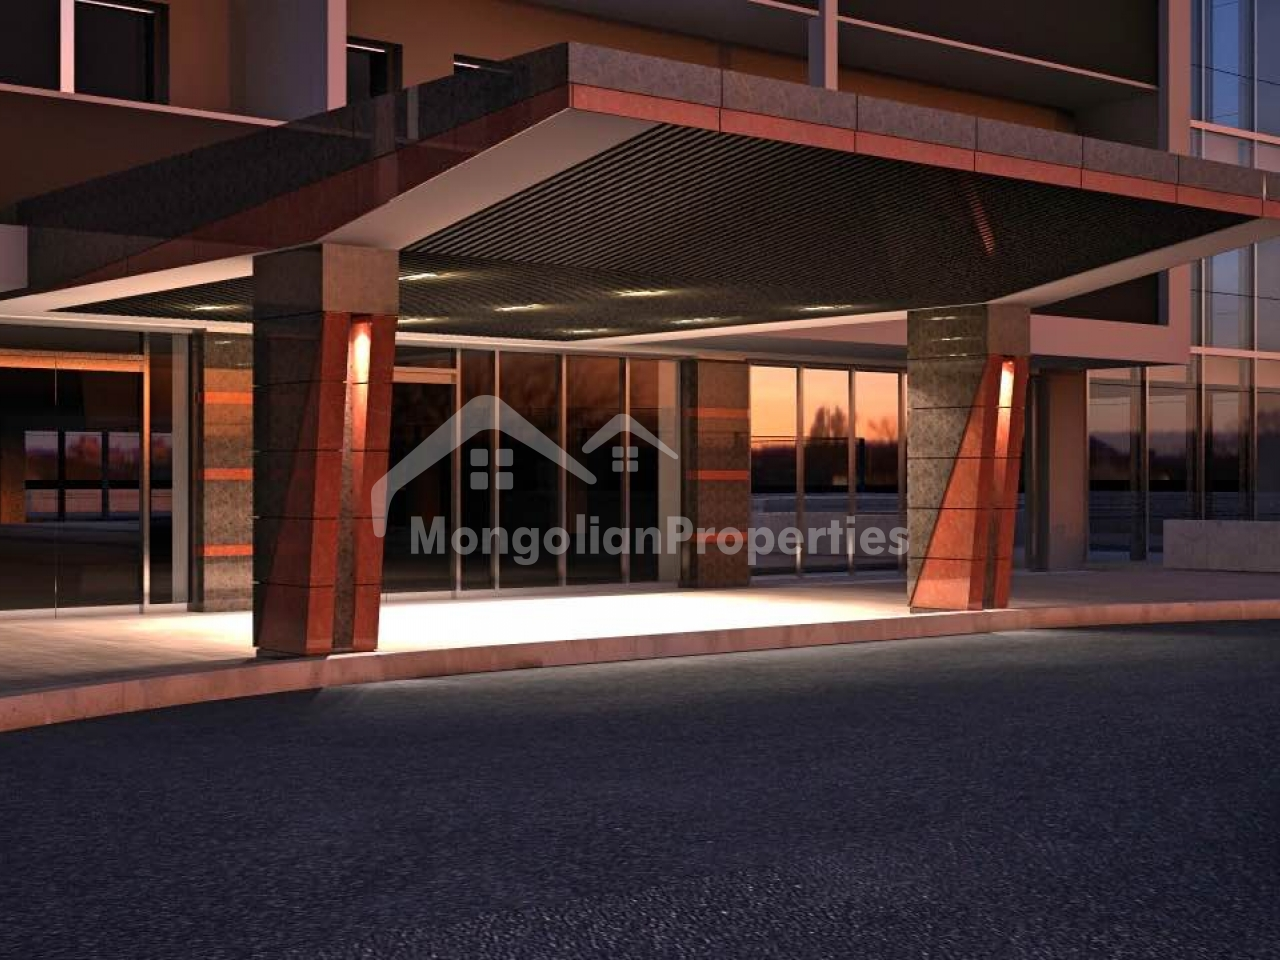 FOR SALE: Japan Town C-4 two bedroom with garage